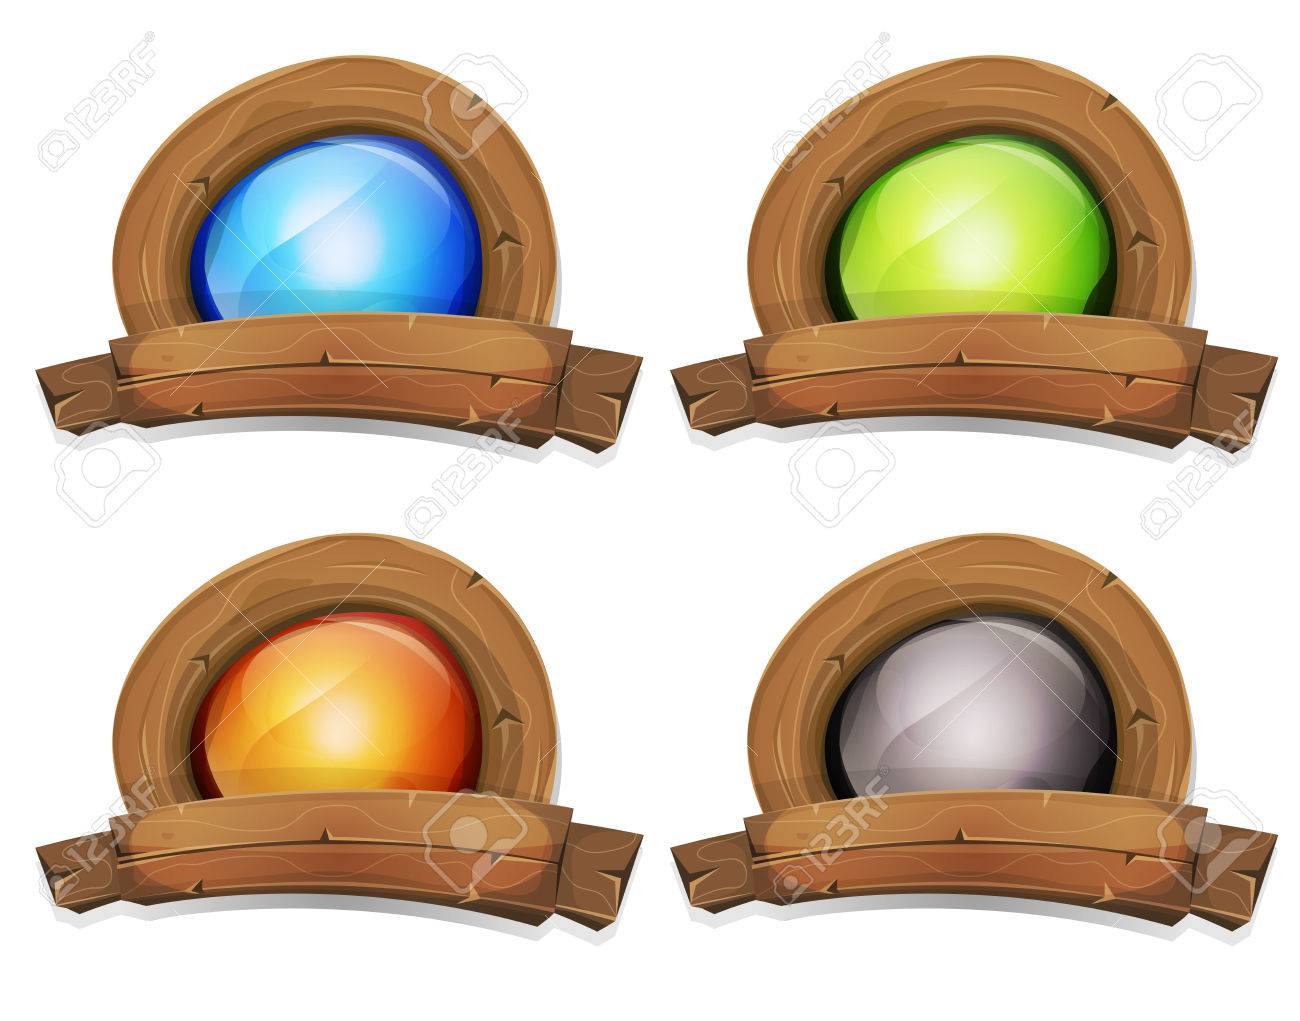 Illustration of a cartoon design wooden badge and banner with enlightened screen inside, for farm and agriculture business or ui game - 44226466